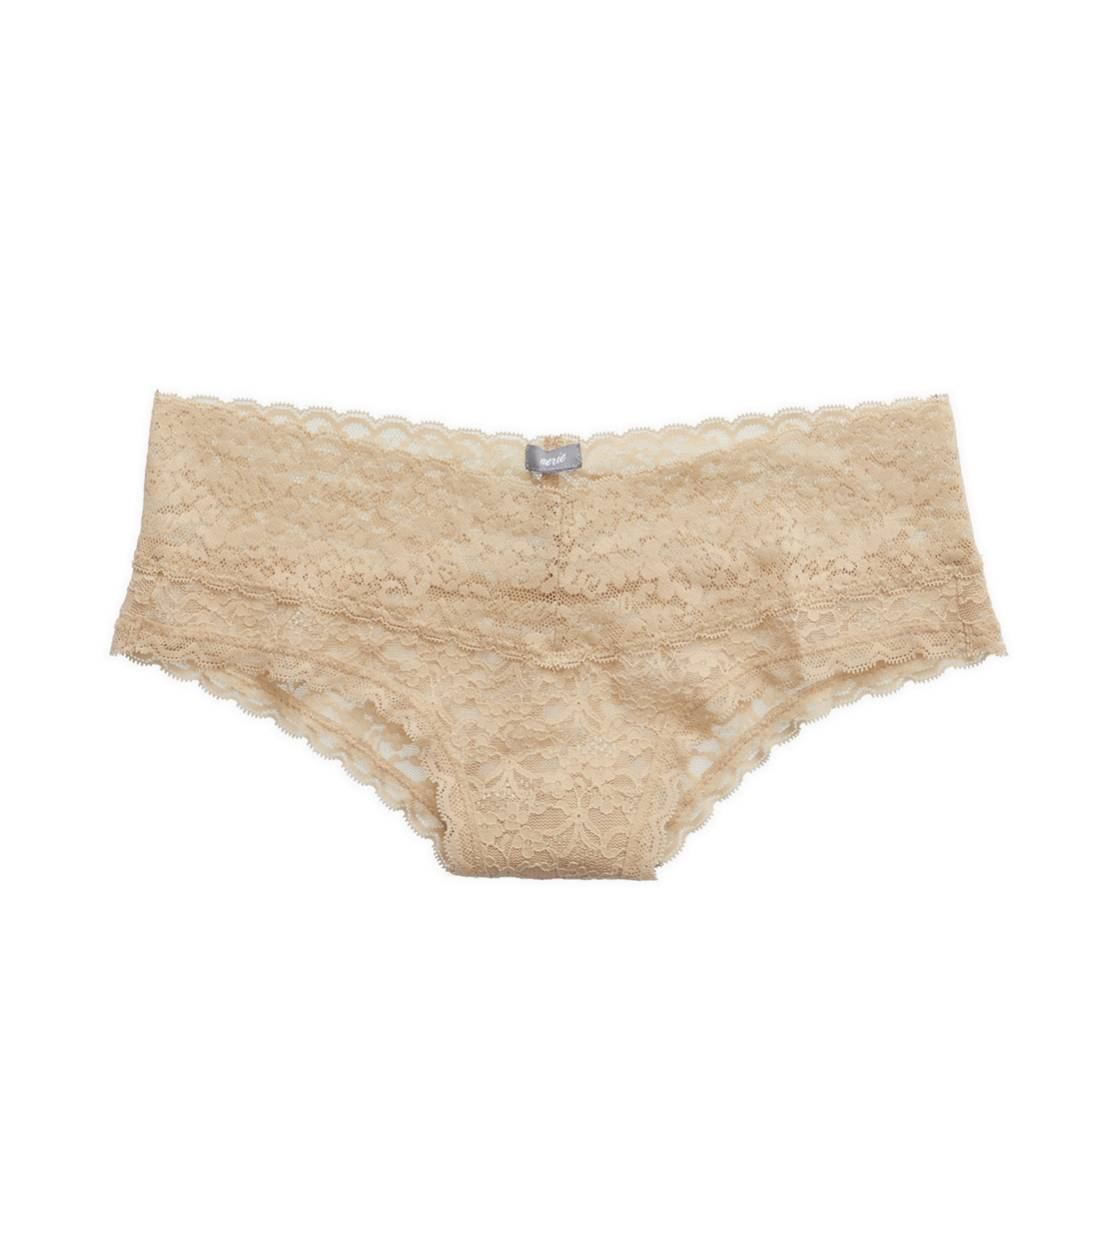 Natural Nude Aerie Vintage Lace Cheeky